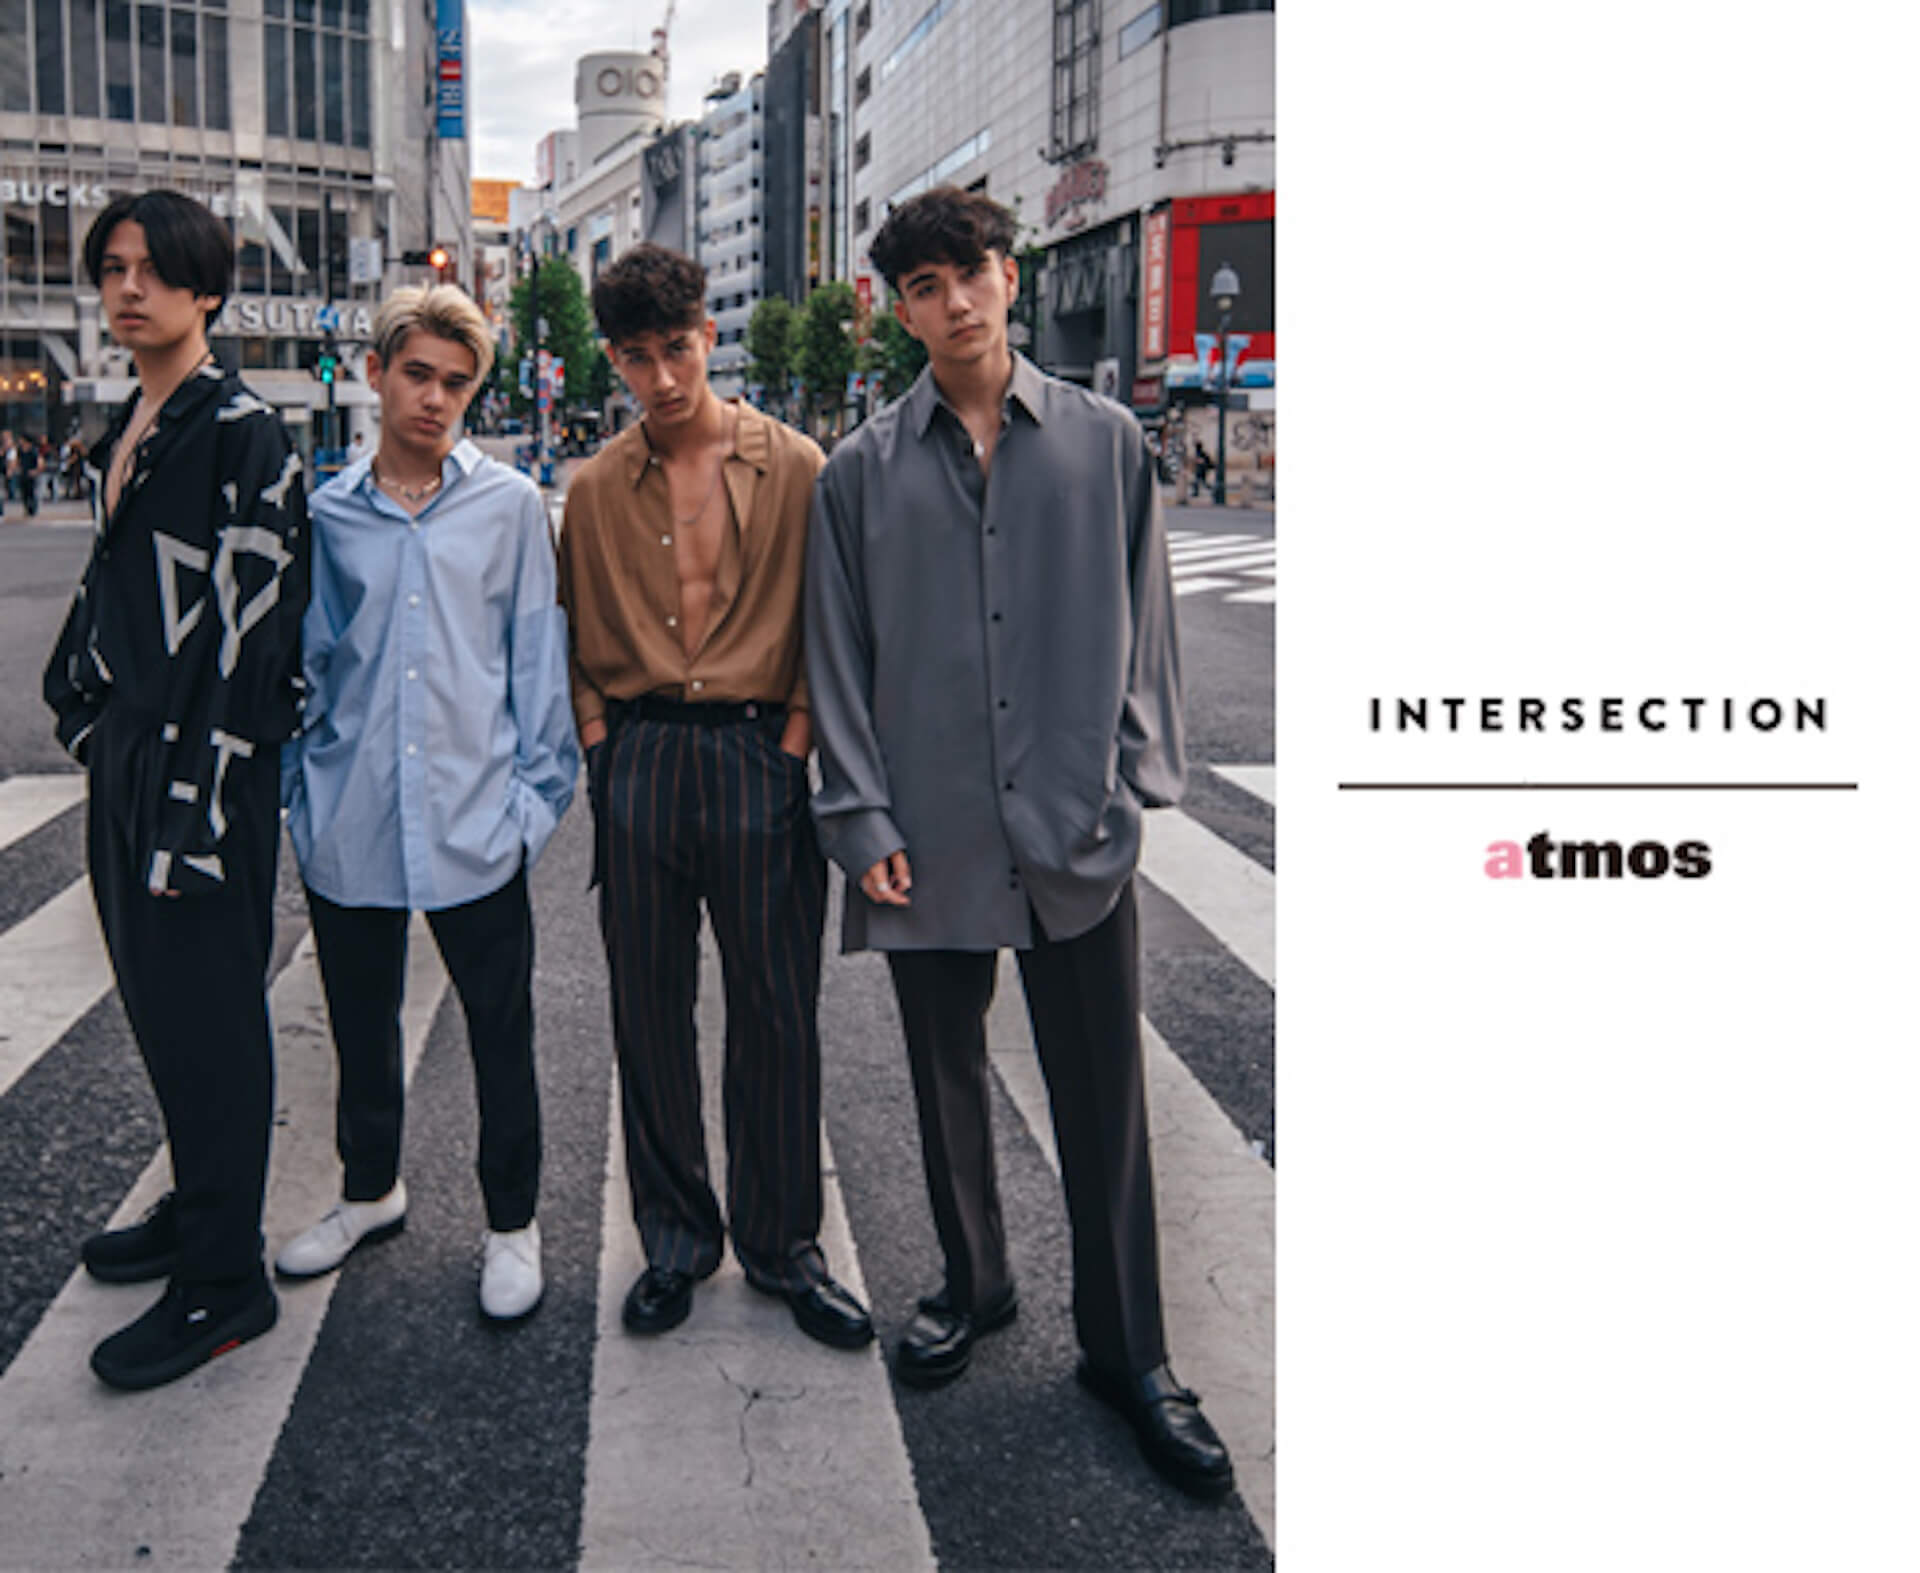 INTERSECTIONがatmos pinkでクリスマスパーティーを敢行!4カ月ぶりにメンバー全員が揃うミニライブ&トークショーも life191212_intersection_atmospink_3